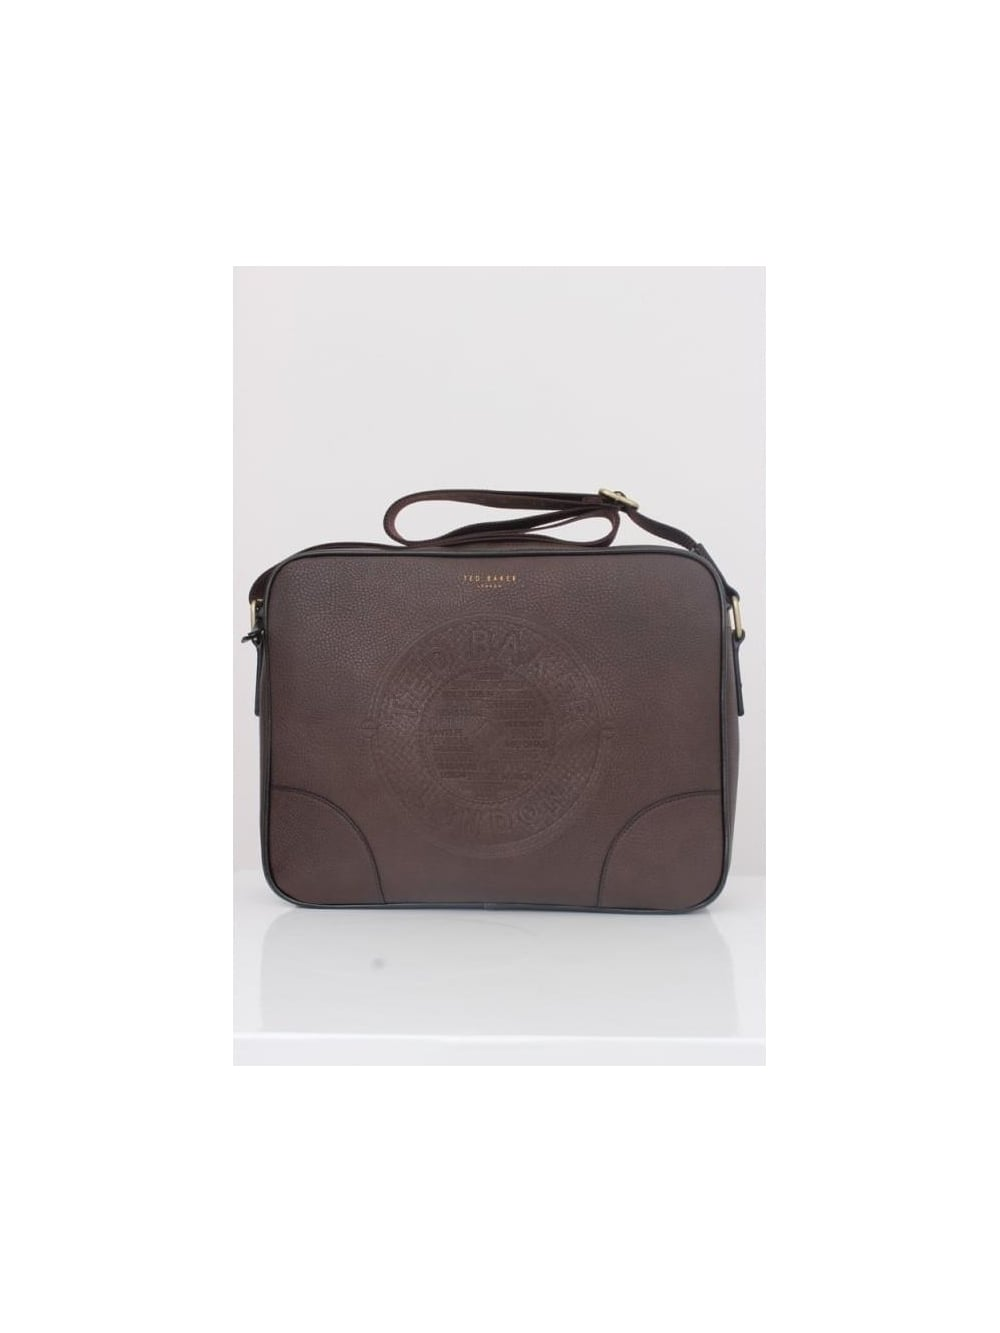 1a94d5546b Ted Baker Donboss Embossed Messenger Bag in Chocolate - Northern Threads